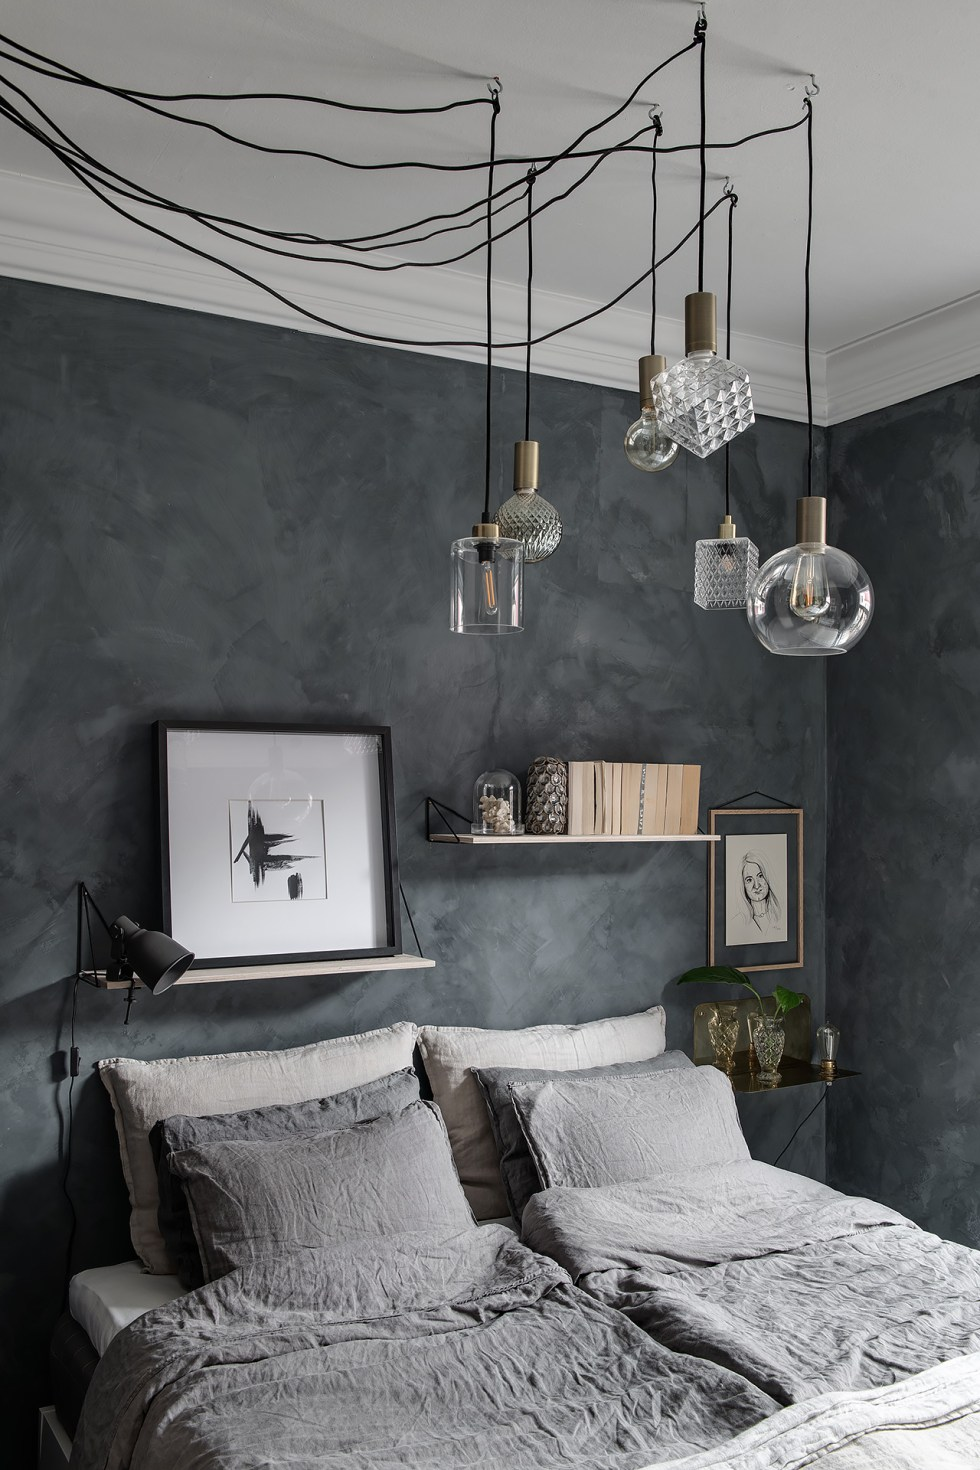 A Nordic bedroom with grey watercolor walls, a comfy bed and floating shelves and a nightstand plus a cool and catchy pendant lamps